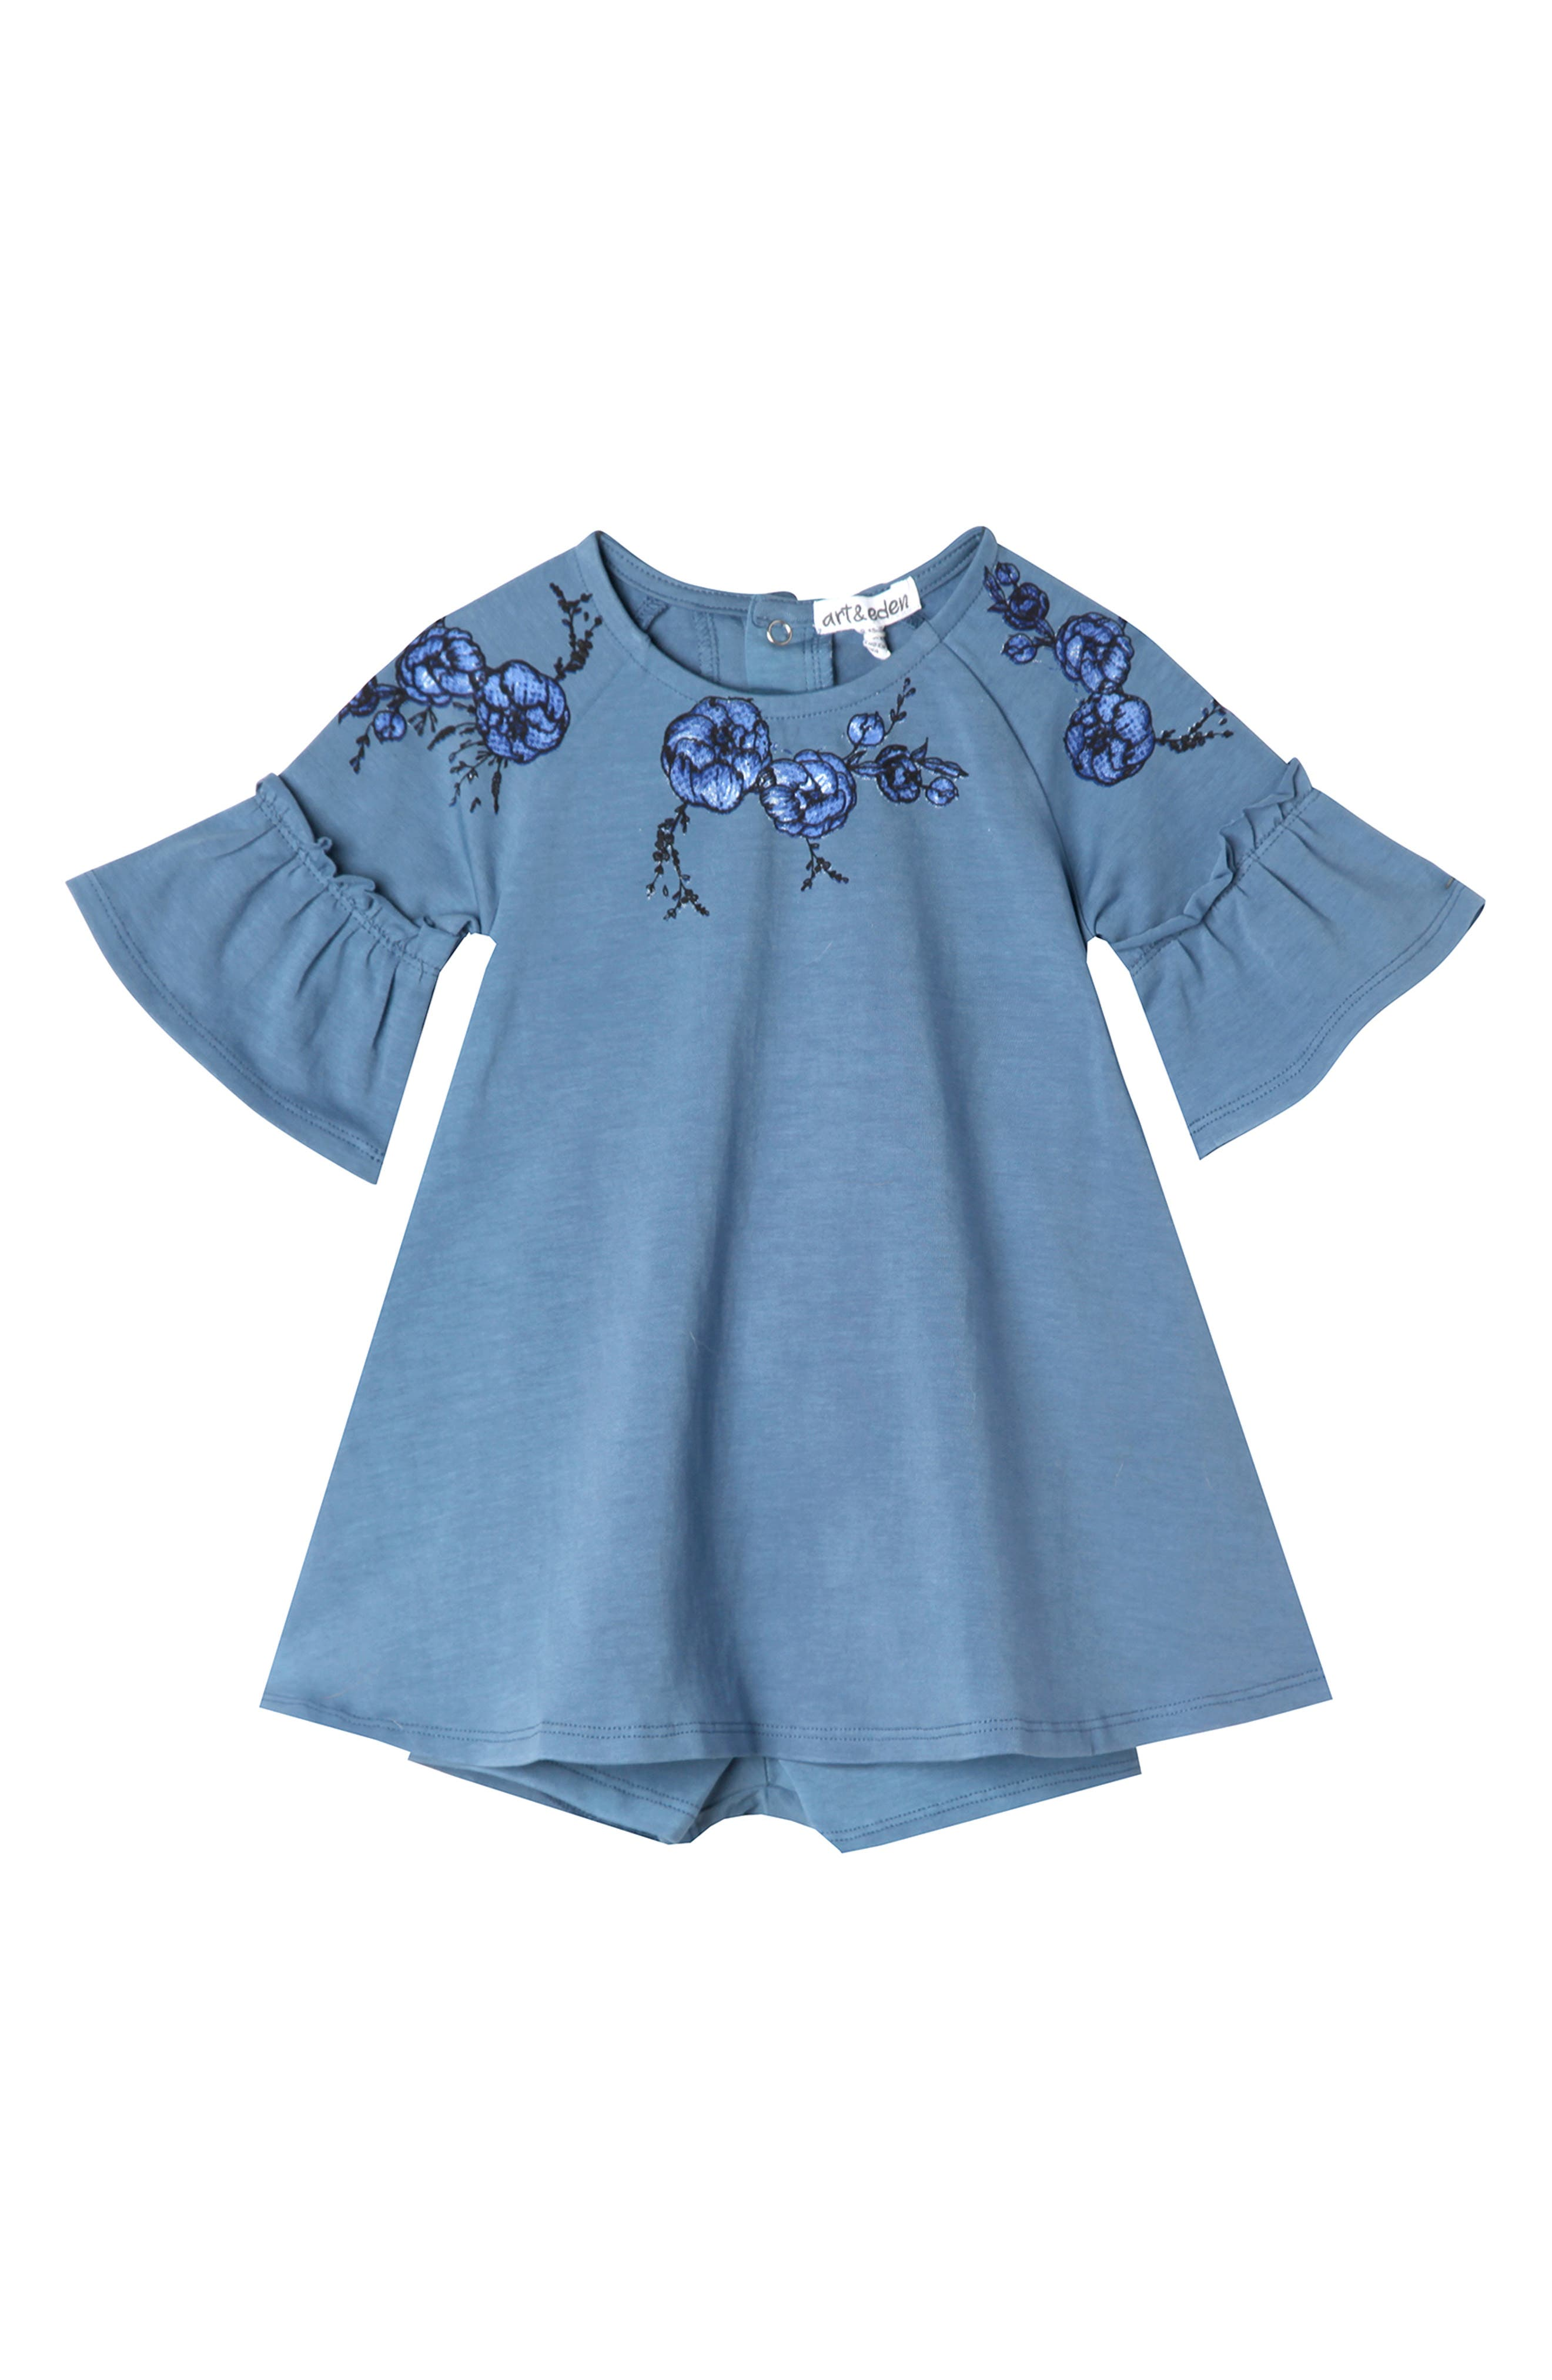 Abigail Embroidered Dress & Shorts Set,                         Main,                         color, AEGEAN BLUE